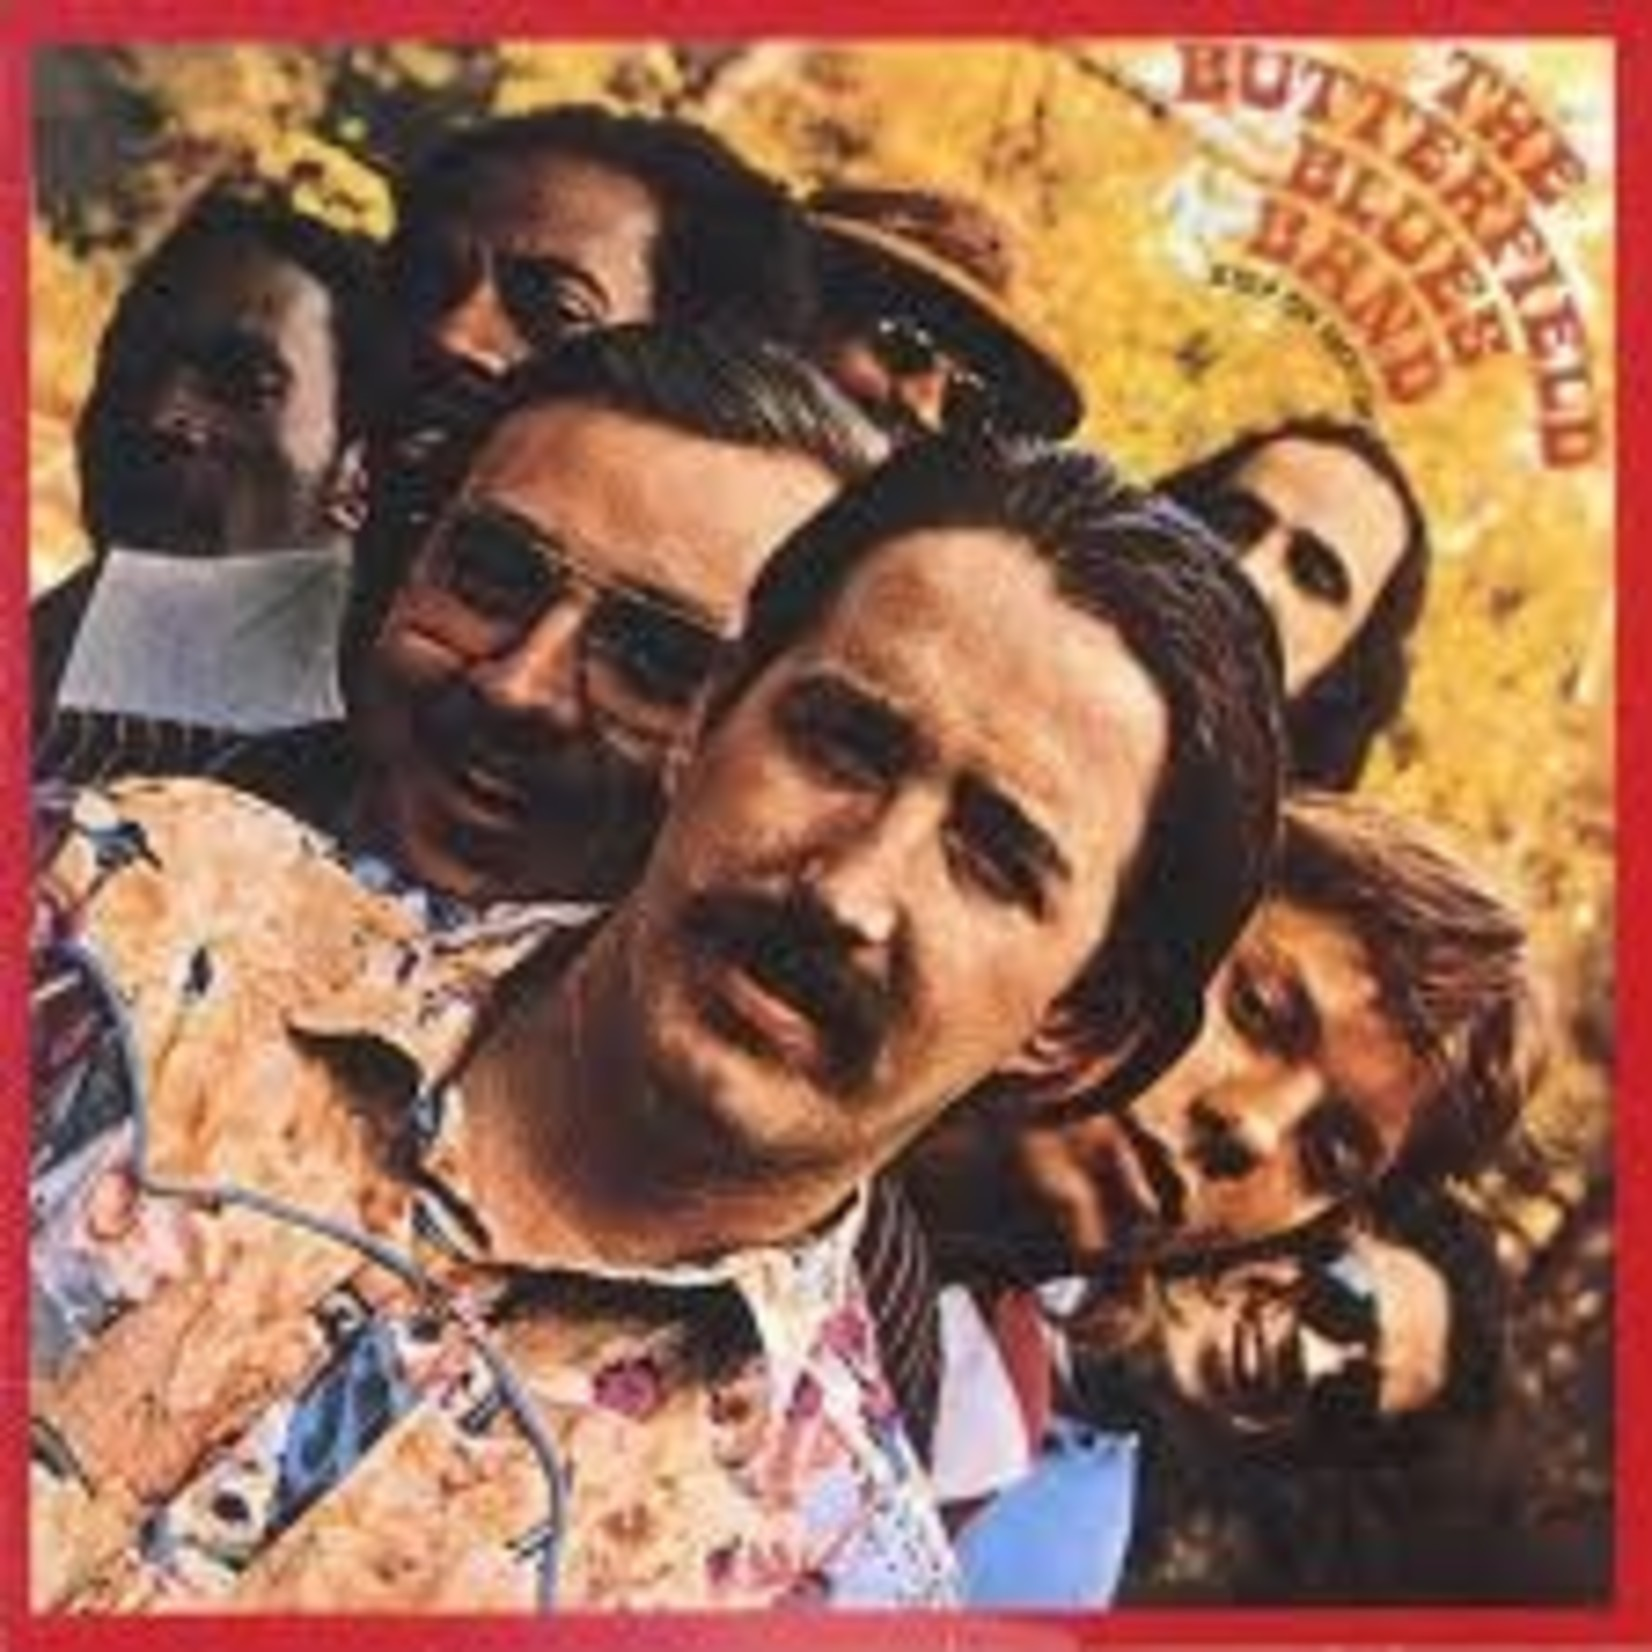 Vinyl The Butterfield Blues Band - Keep On Moving. Final Sale